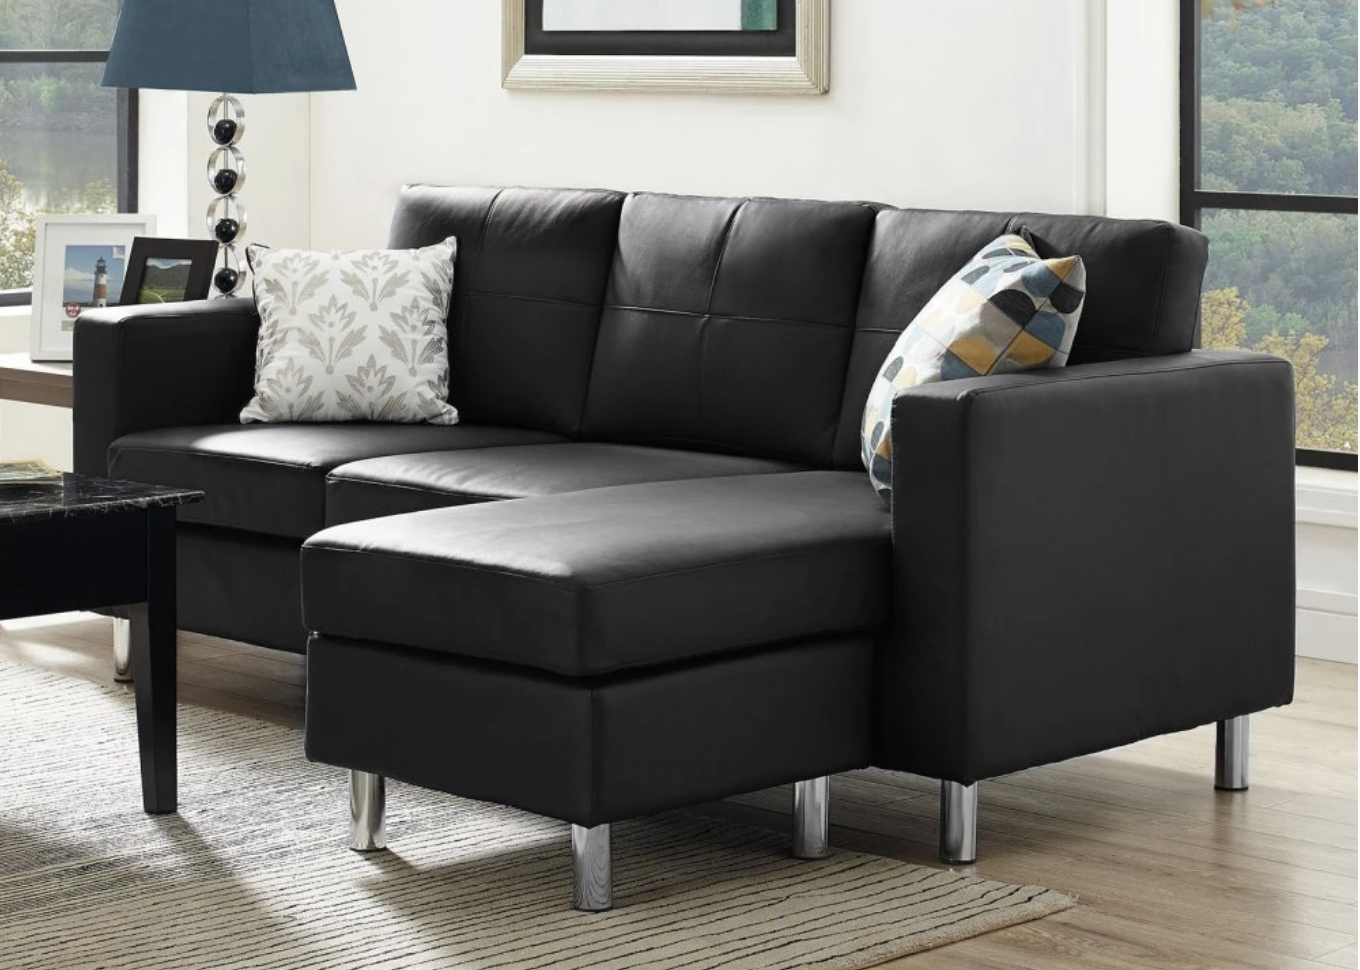 Recent 100x100 Sectional Sofas For 75 Modern Sectional Sofas For Small Spaces (2018) (View 13 of 20)